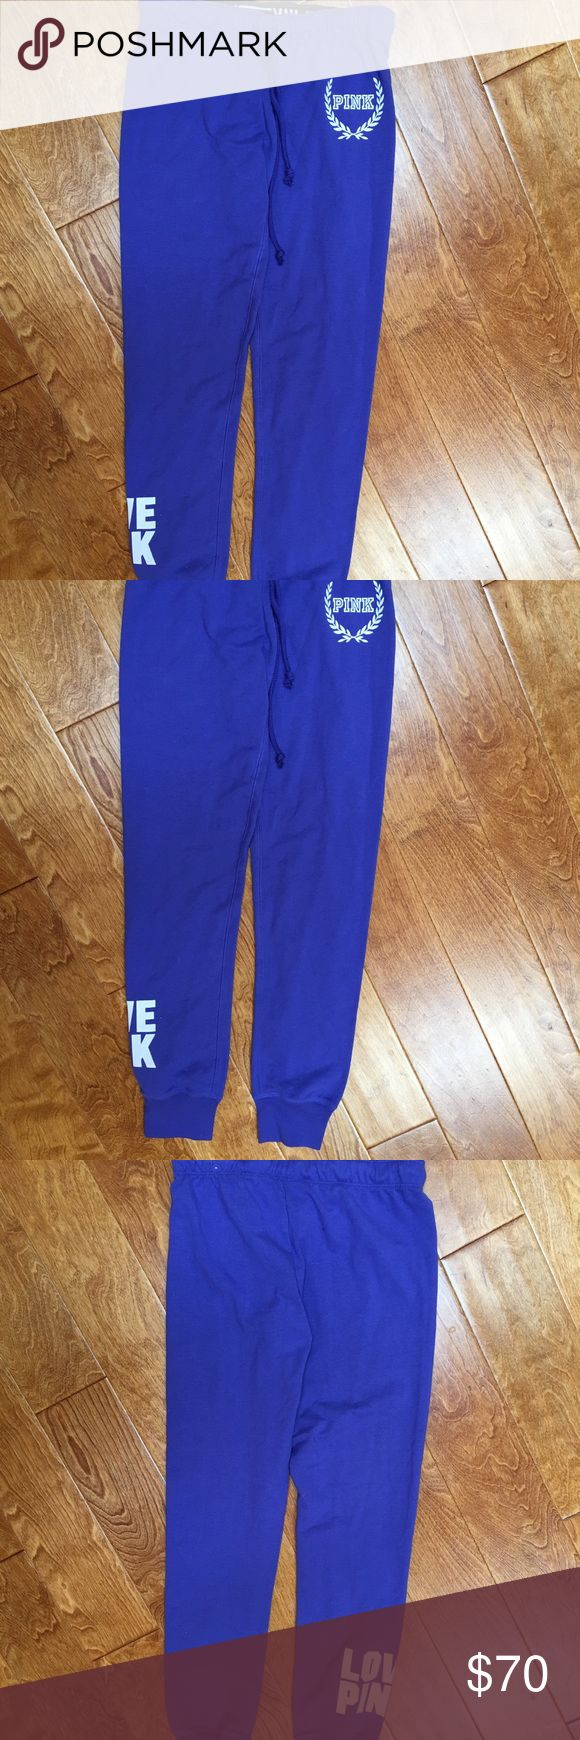 PINK Victoria's Secret Purple gym pants! XS NWT PINK Victoria's Secret purple gym pants with white graphics. Brand new with tags on them! Never worn! I LOVE these pants.. I also have a pair of my own.. super cute & comfy! LoVe the bright purple!!! PINK Victoria's Secret Pants Track Pants & Joggers